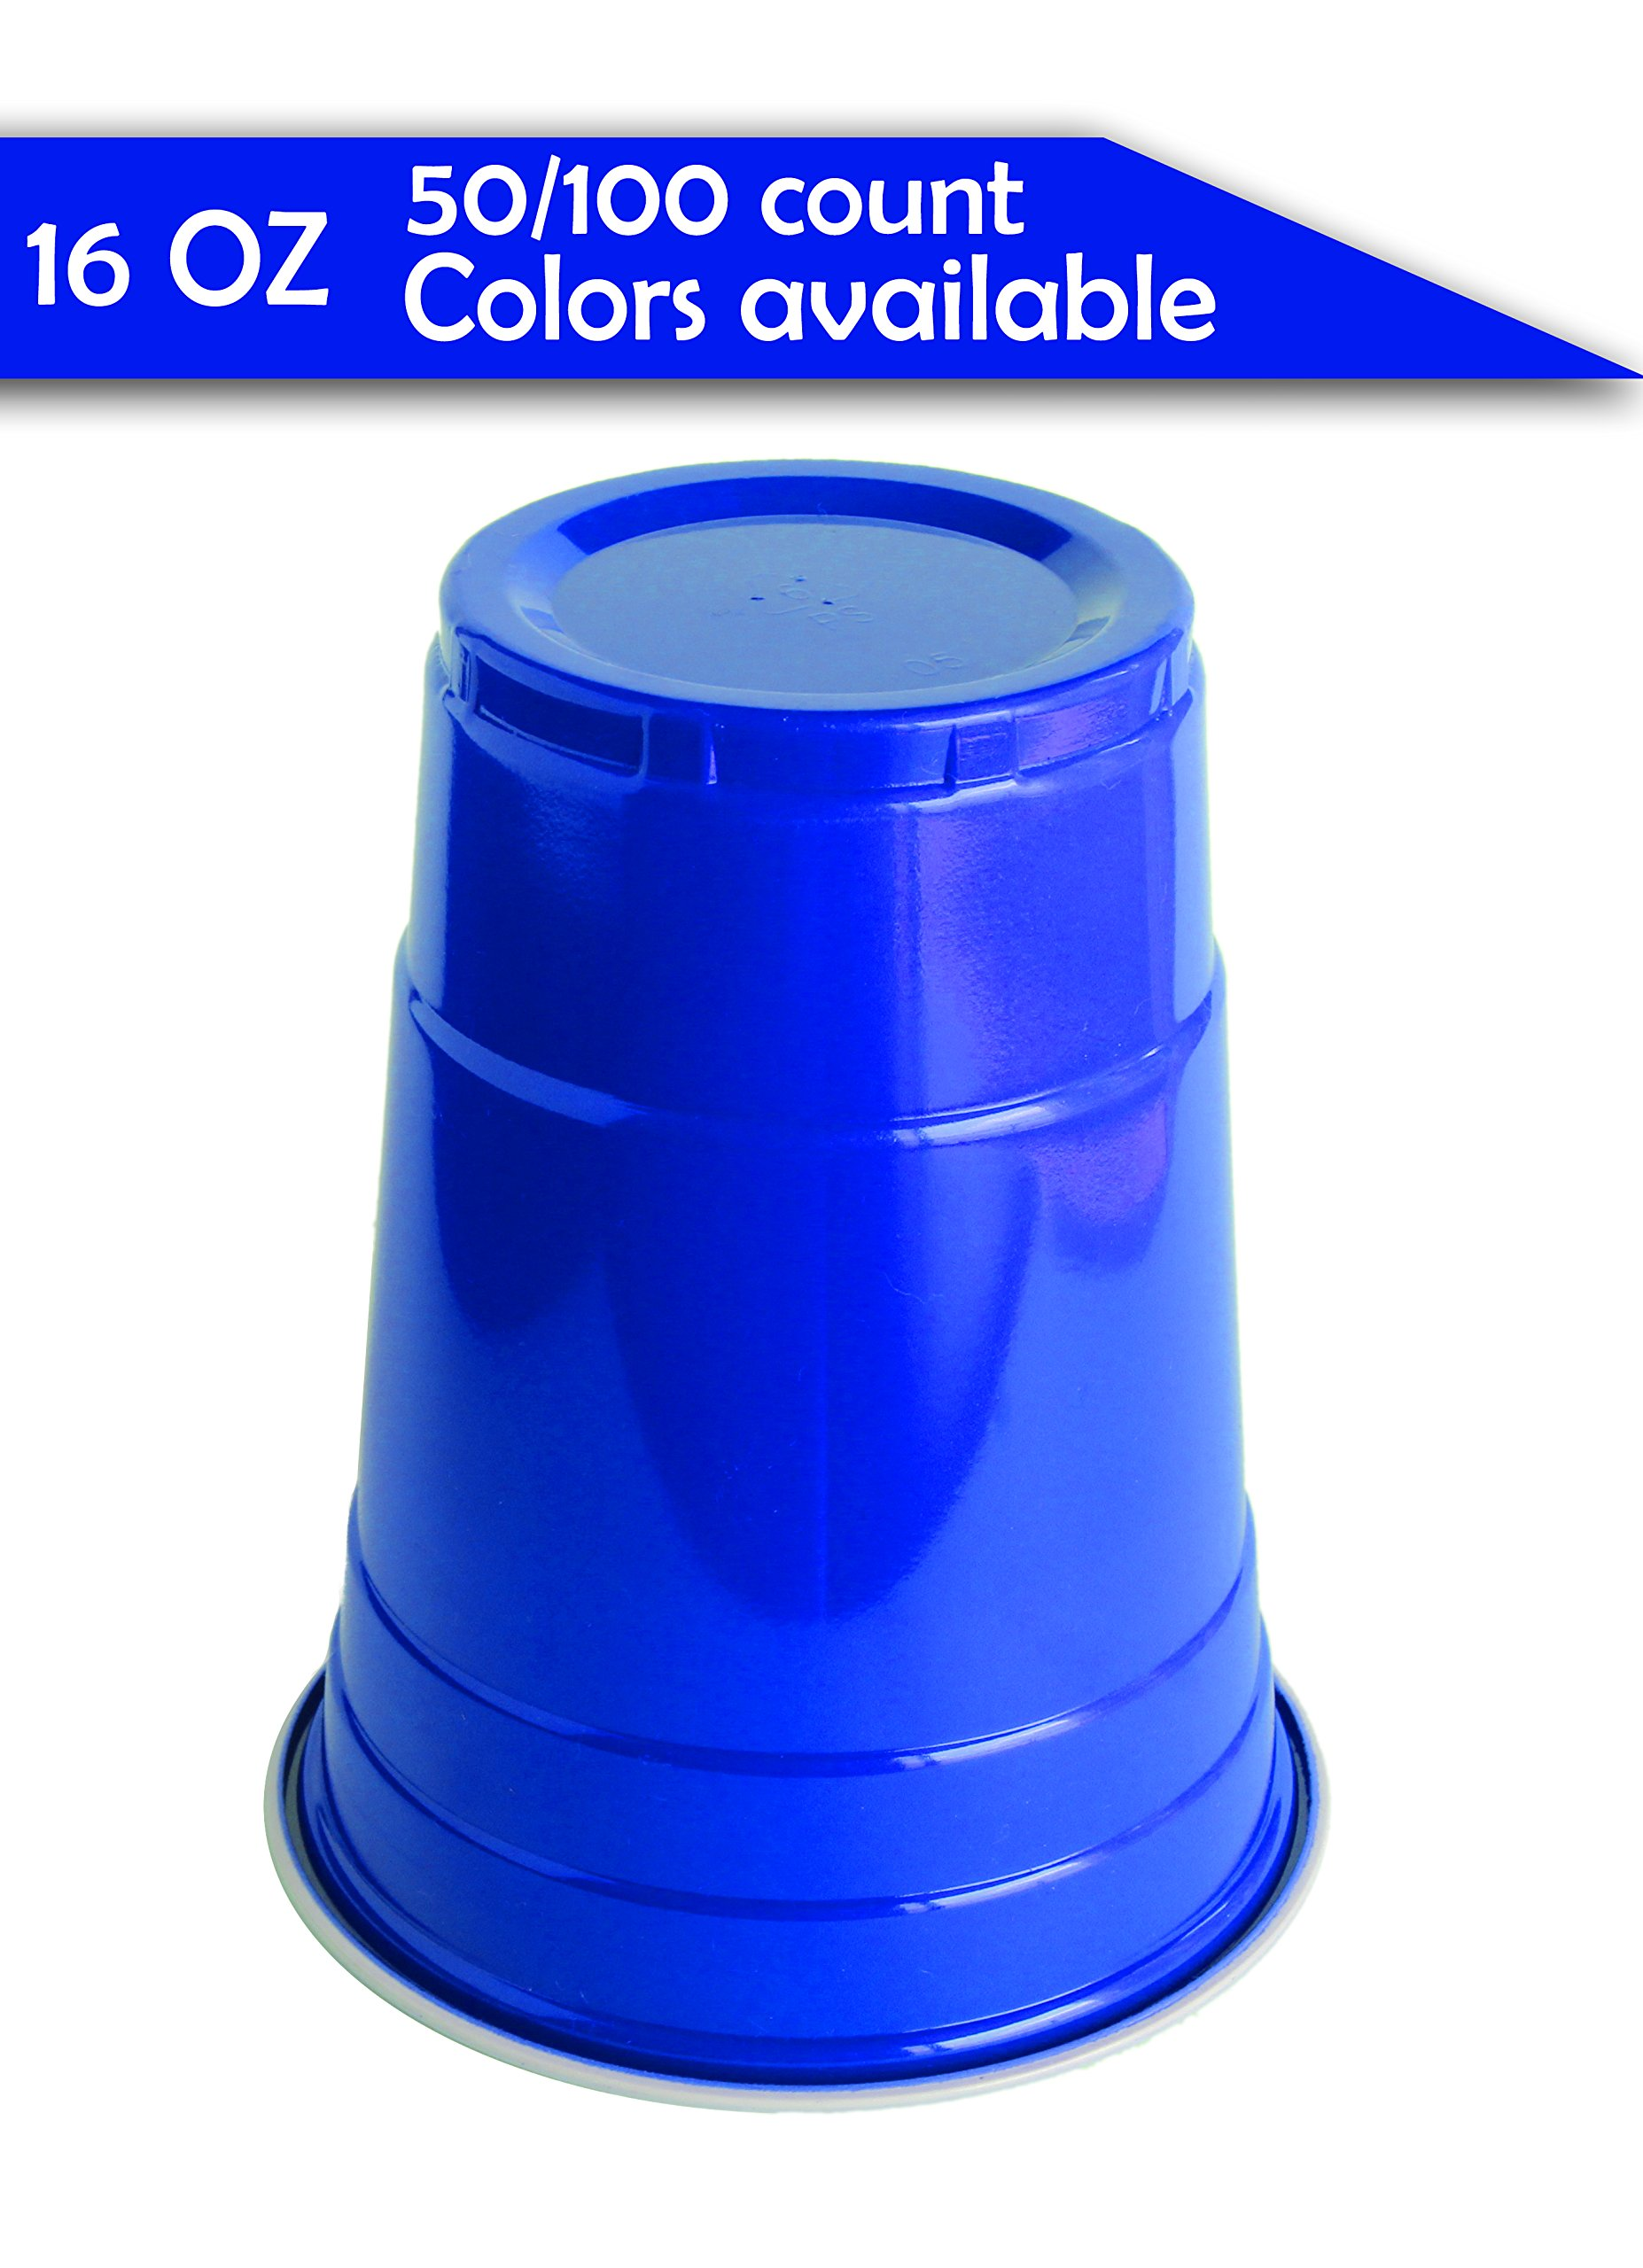 Jaaia Disposable/Reusable Plastic Party Cups (birthday,graduation,bachelorette,wedding,beach,garden,beer pong) 16 Ounce (16 OZ) 50/100 Count Red/Blue, High Quality (Blue, 100-Count)